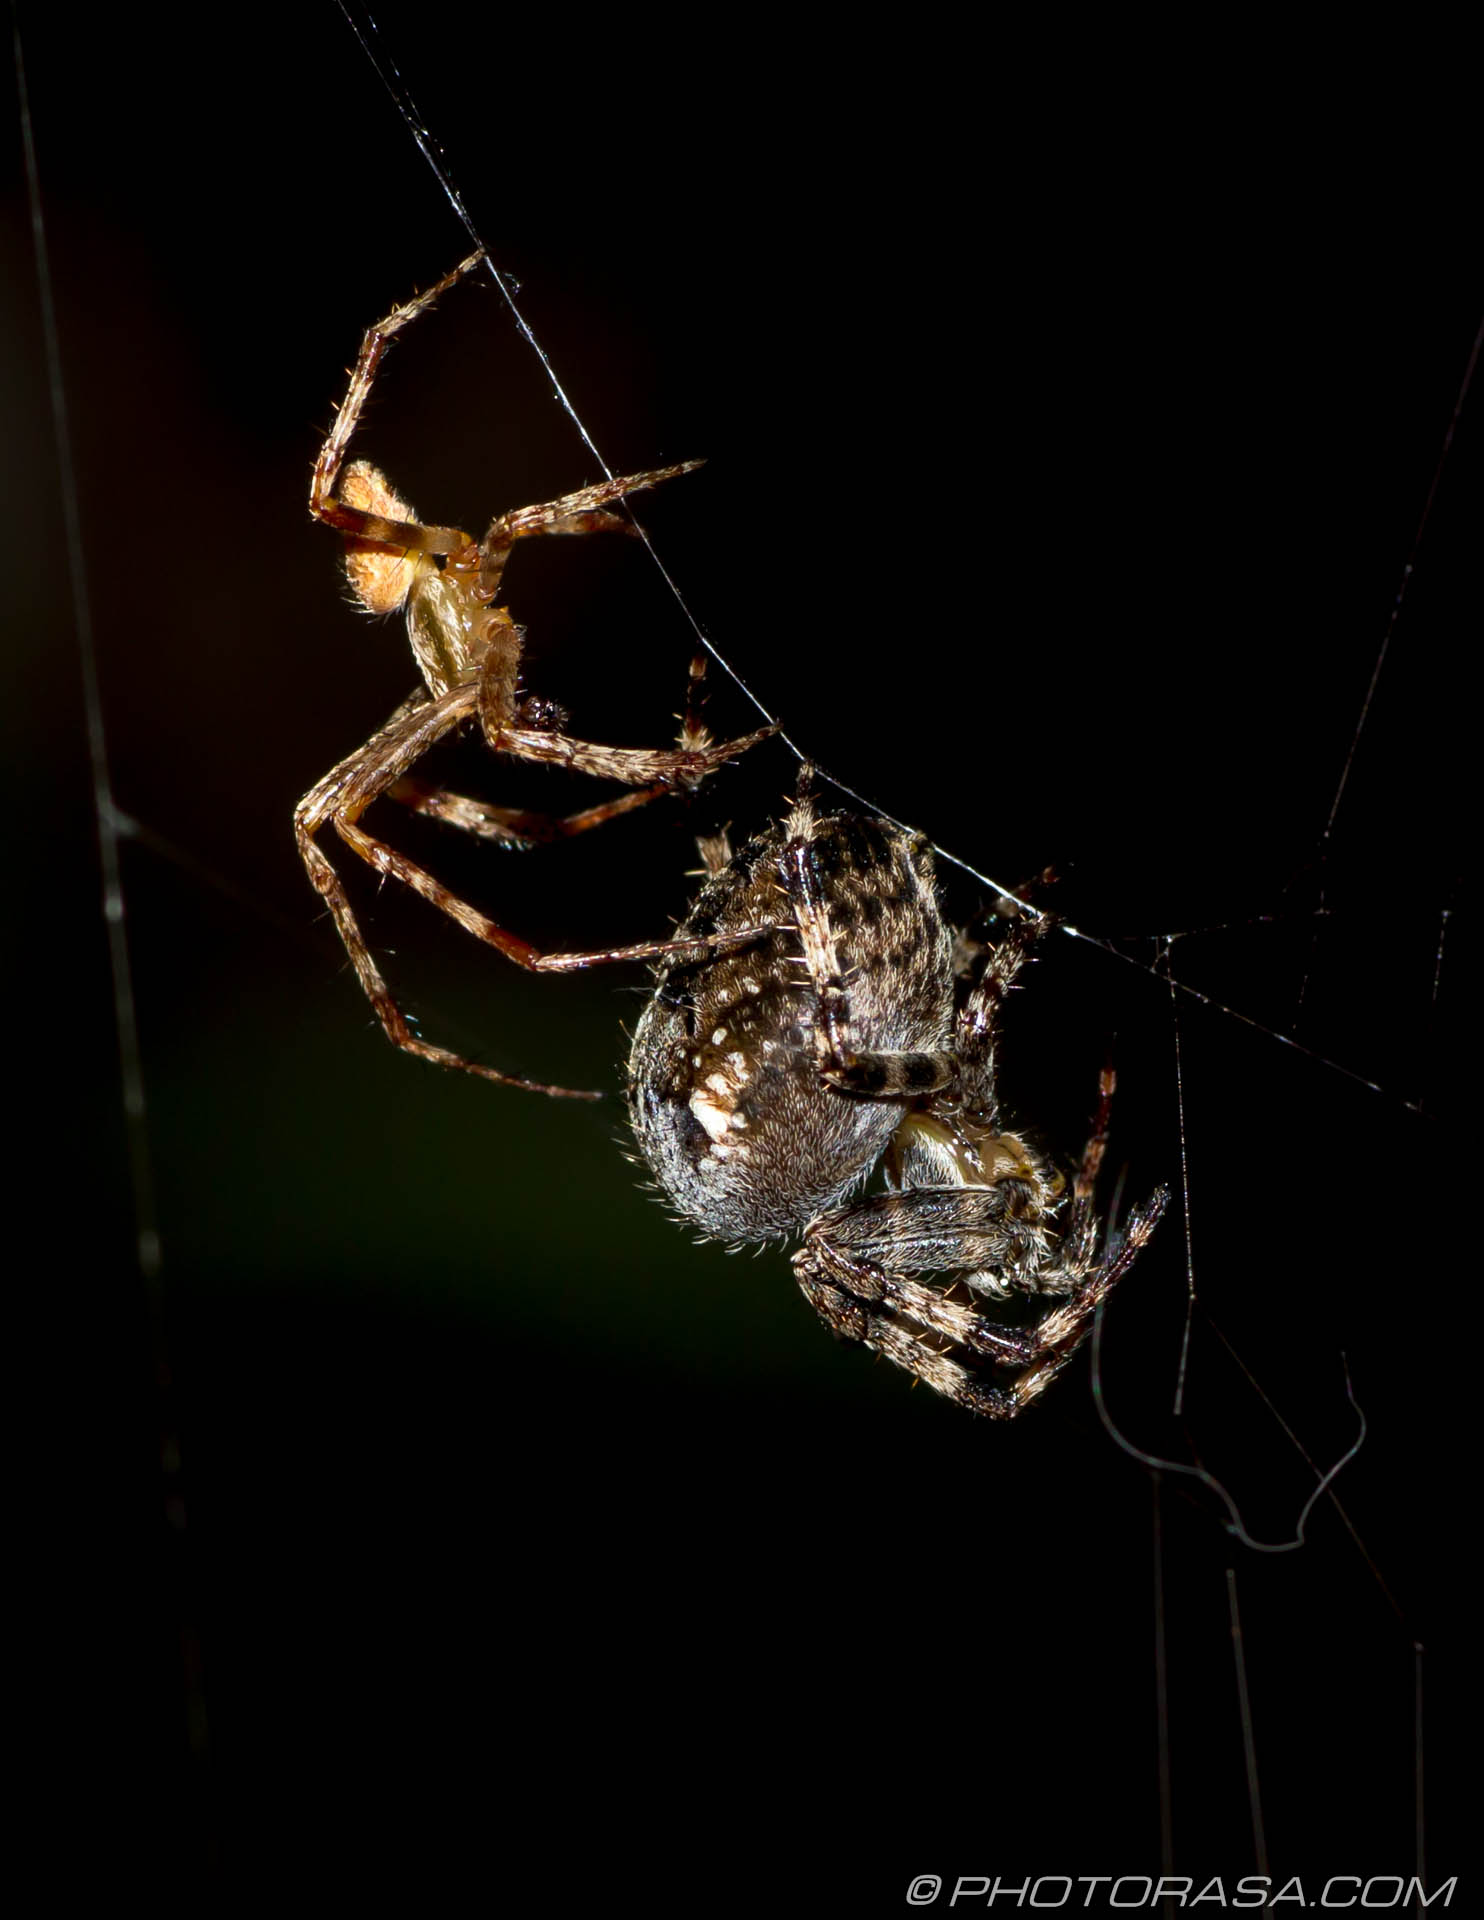 http://photorasa.com/little-large-spider-courtship/ready-to-pounce/